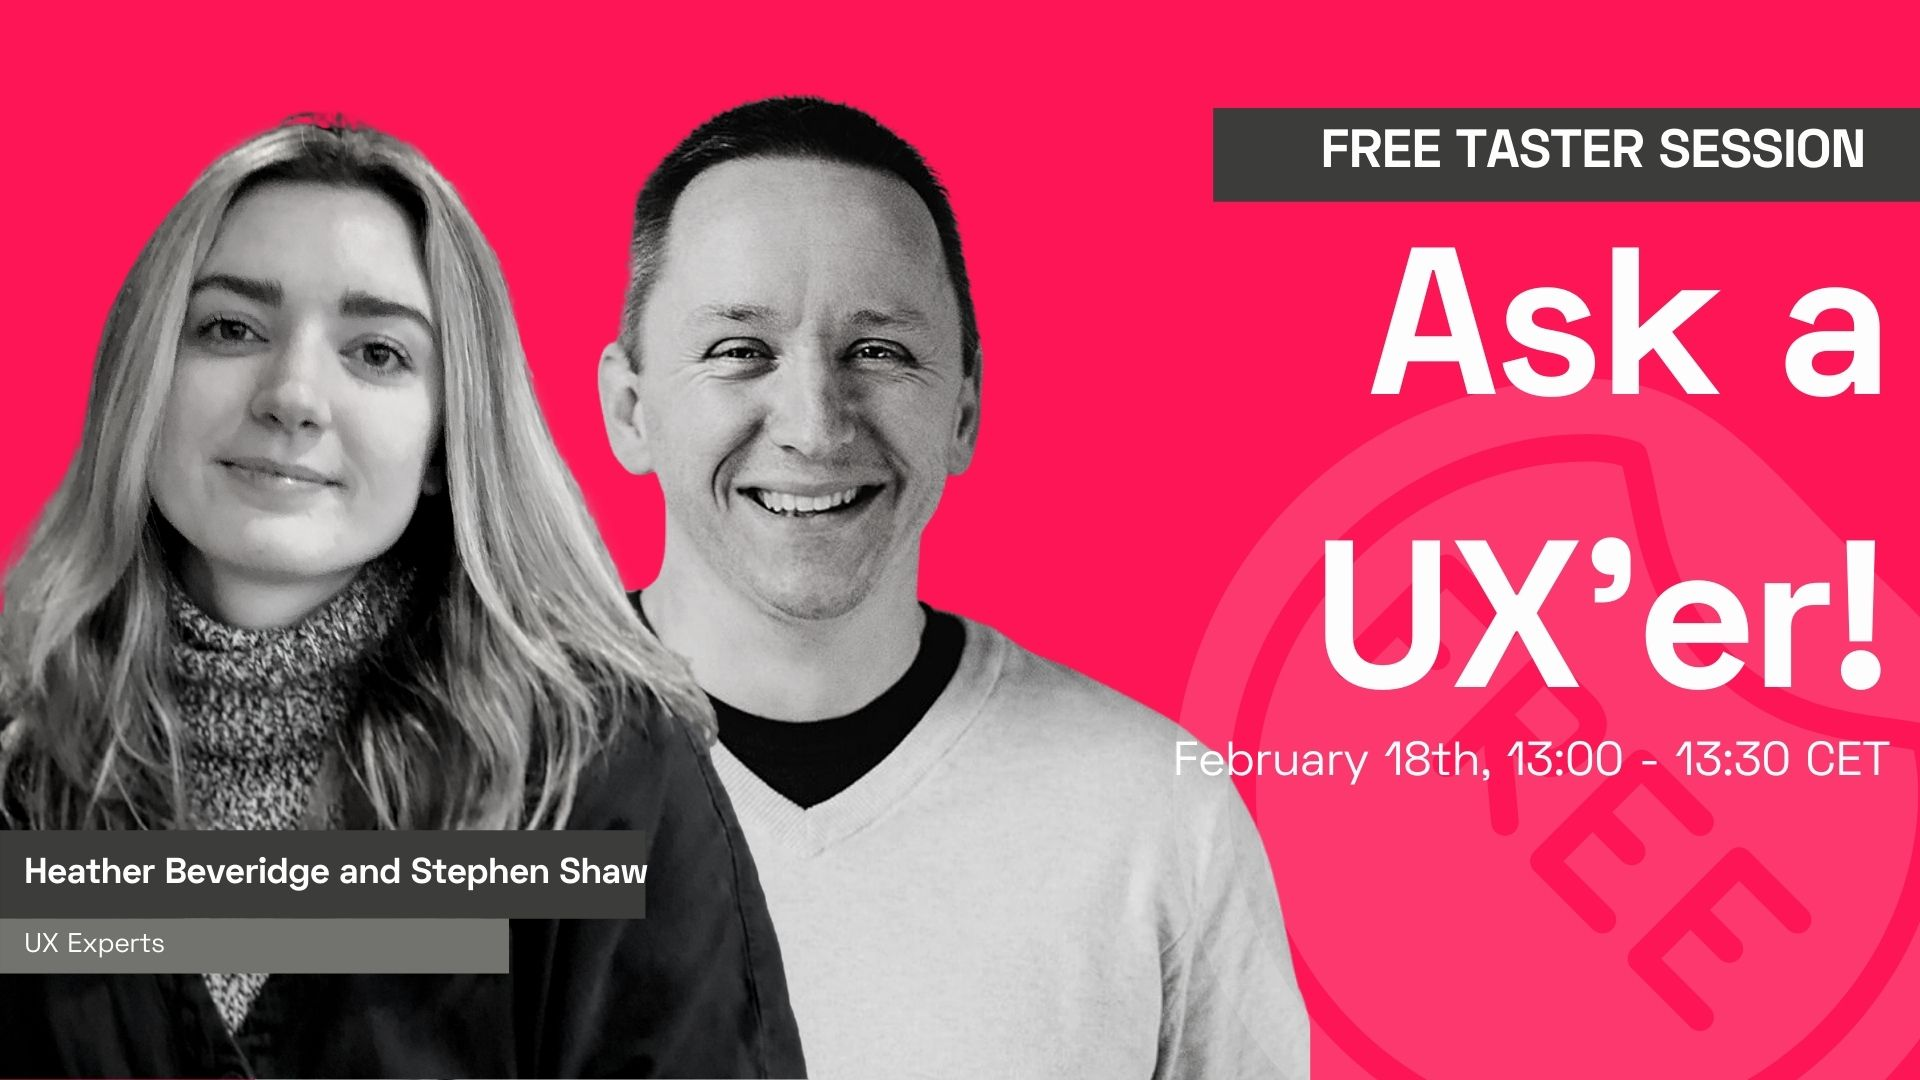 Ask a UX'er with Heather Beveridge and Stephen Shaw